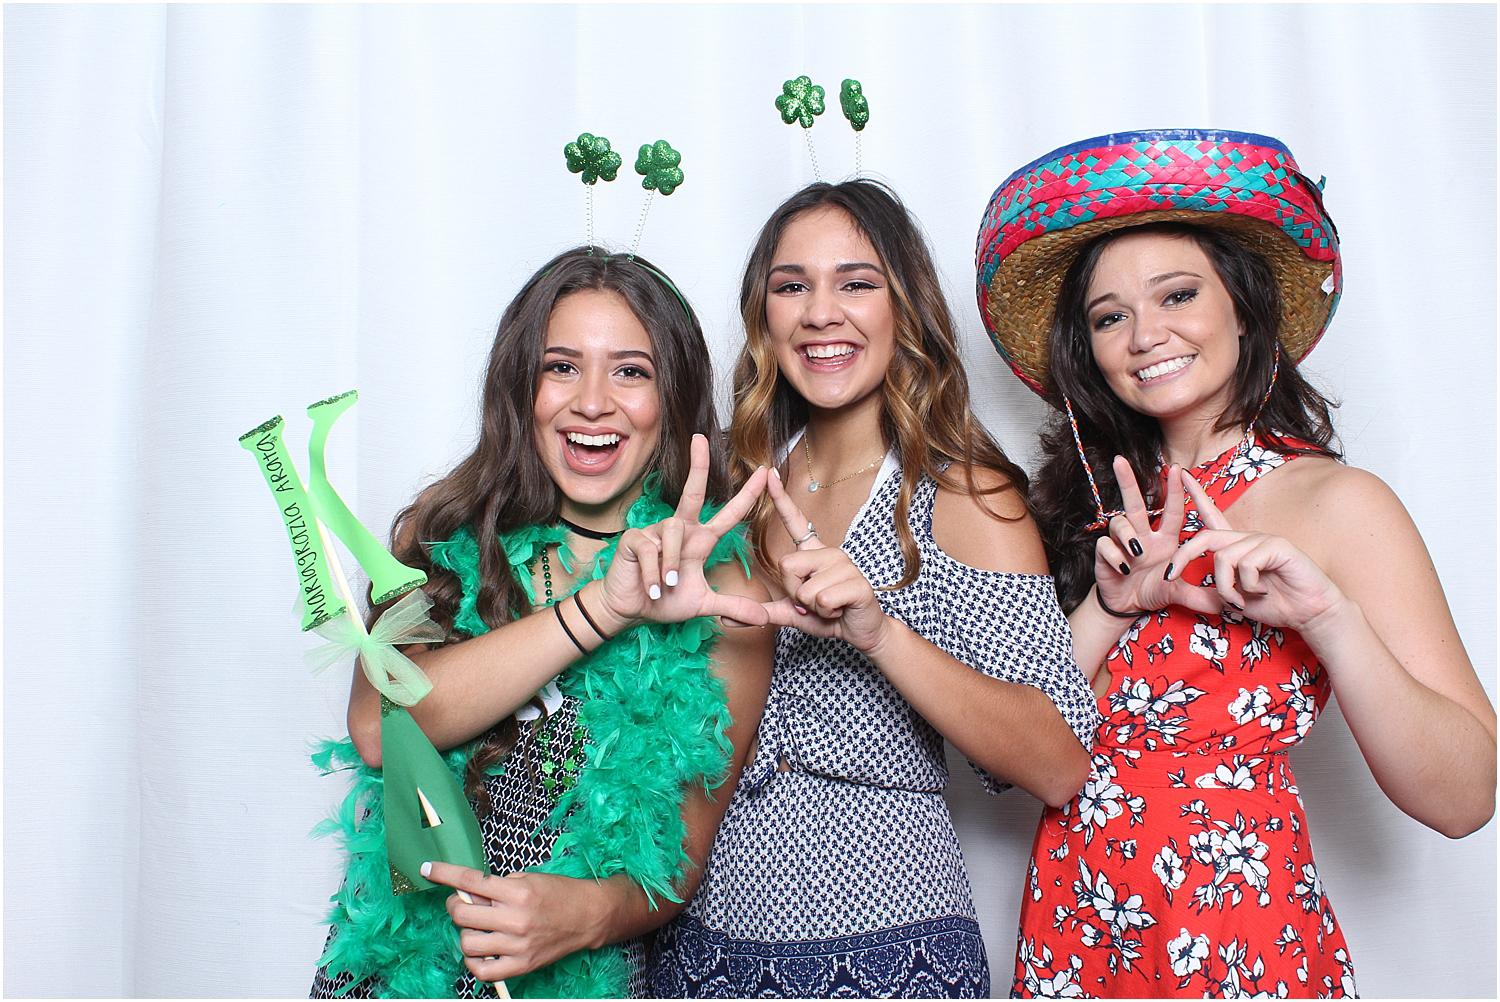 Austin Photo Booth - Kappa Delta Bid Day-7.jpg